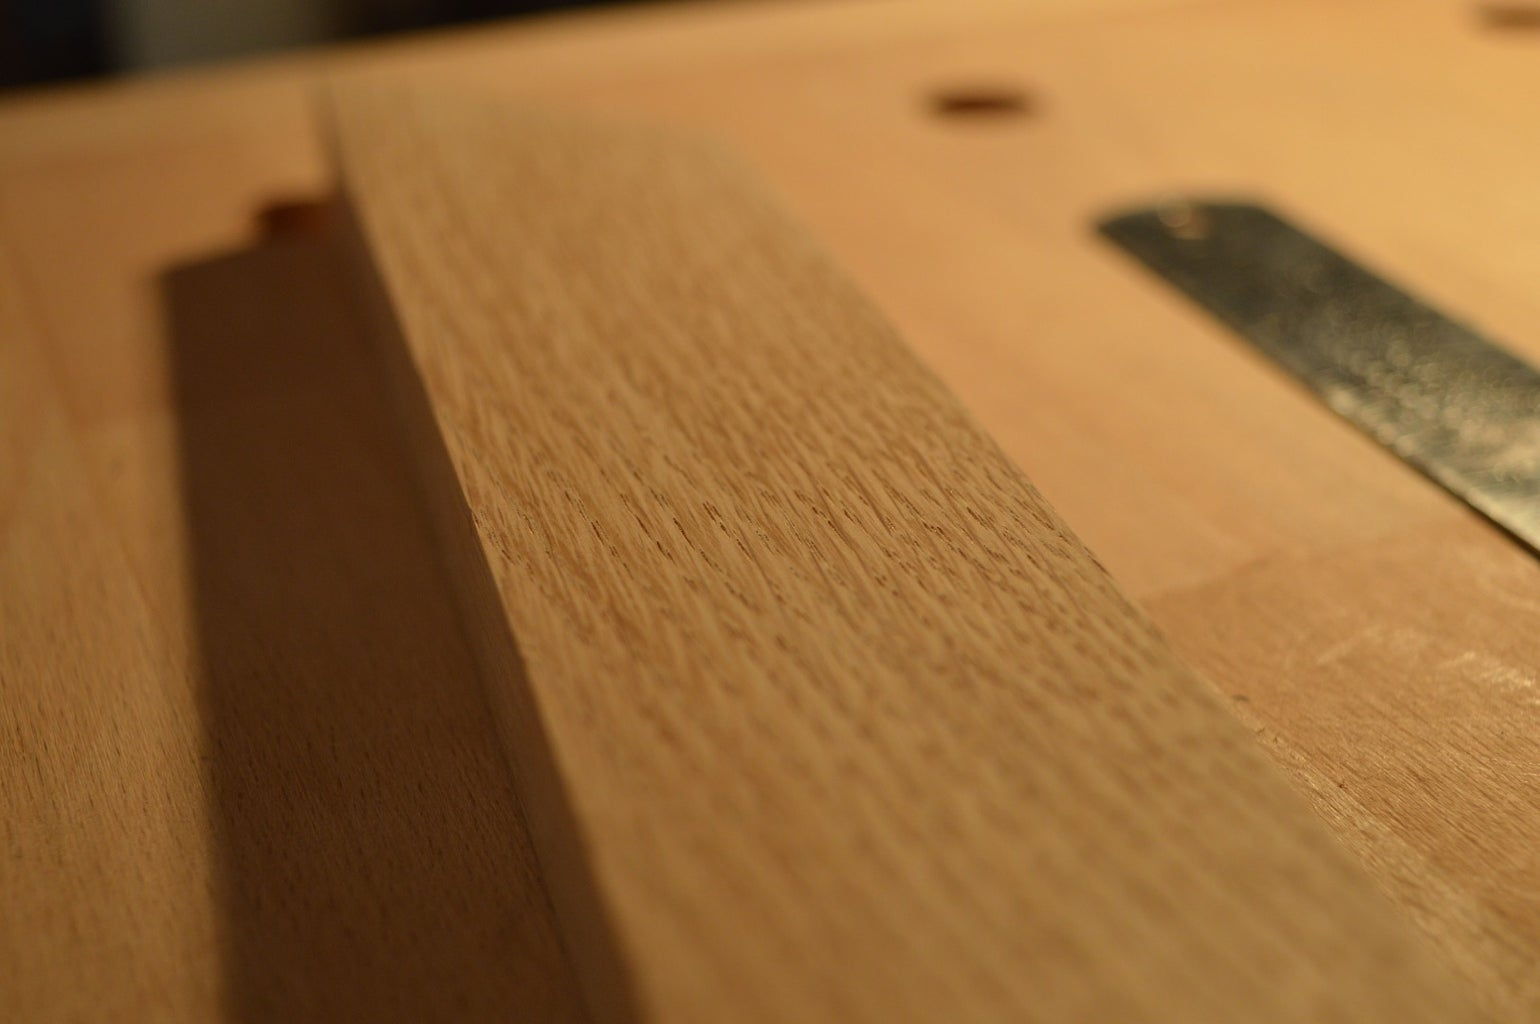 Tapering Edges and Finishing Front Face of Wood